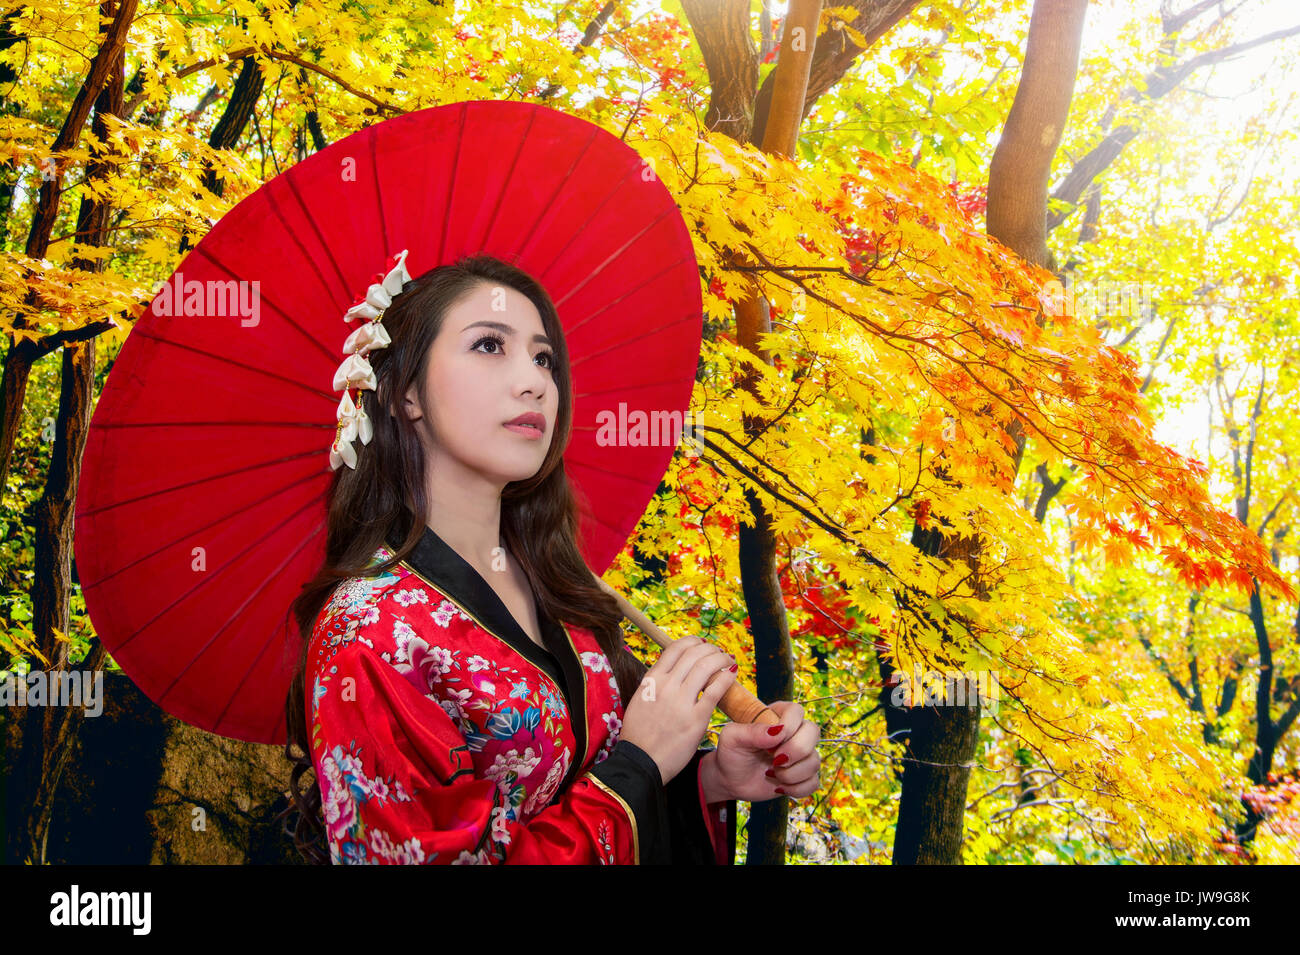 6dfa028dcae57 Asian woman wearing traditional japanese kimono with red umbrella in autumn.